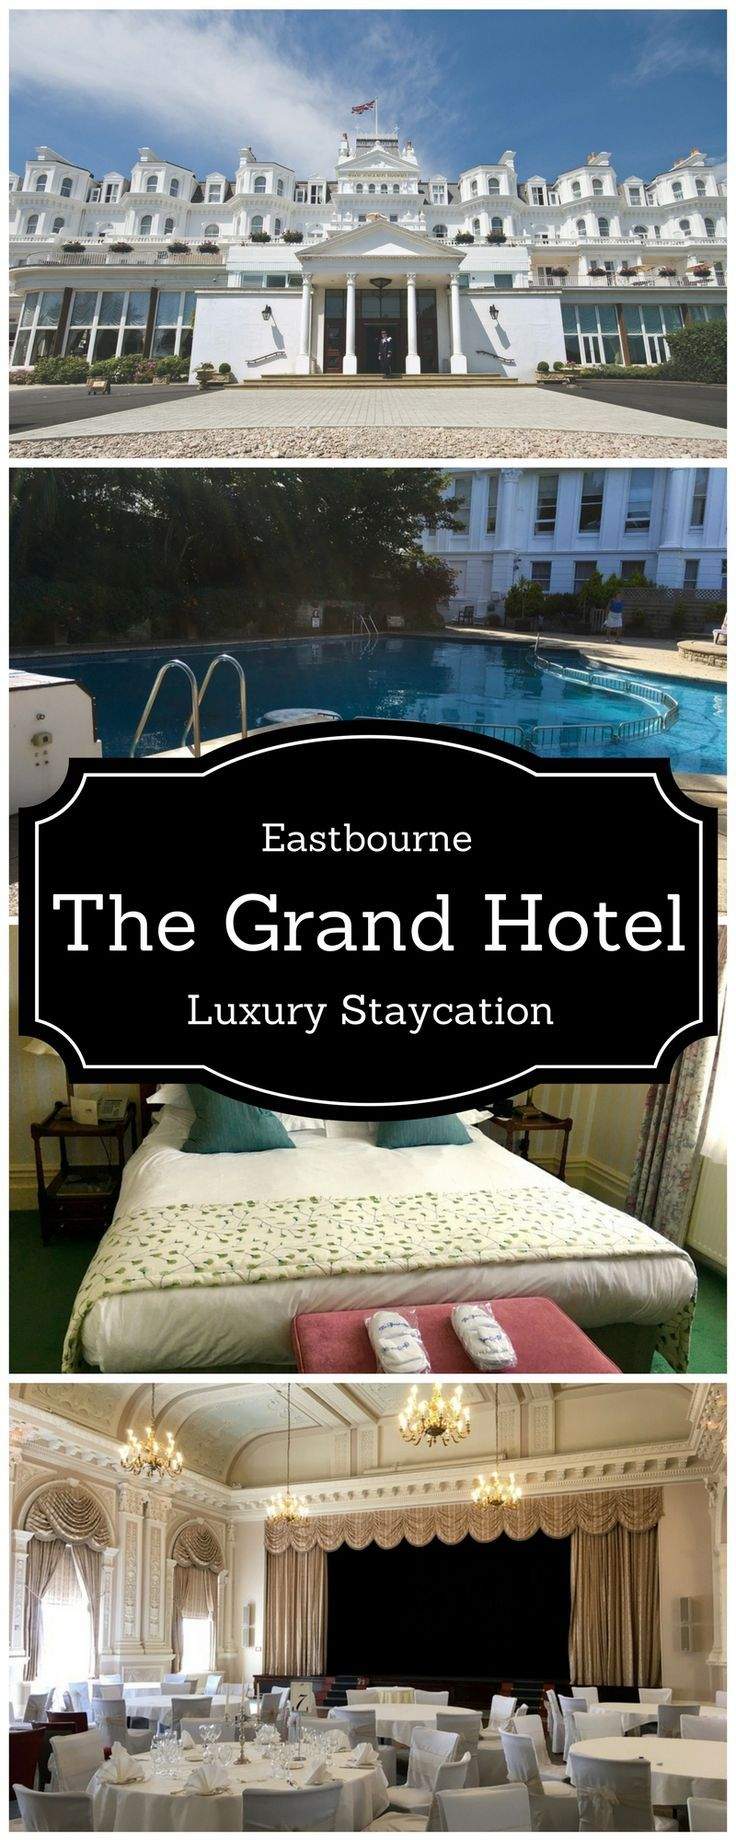 The Grand Hotel, Eastbourne, Quintessential English Seaside Hotel in Eastbourne UK - Luxury Seaside Break